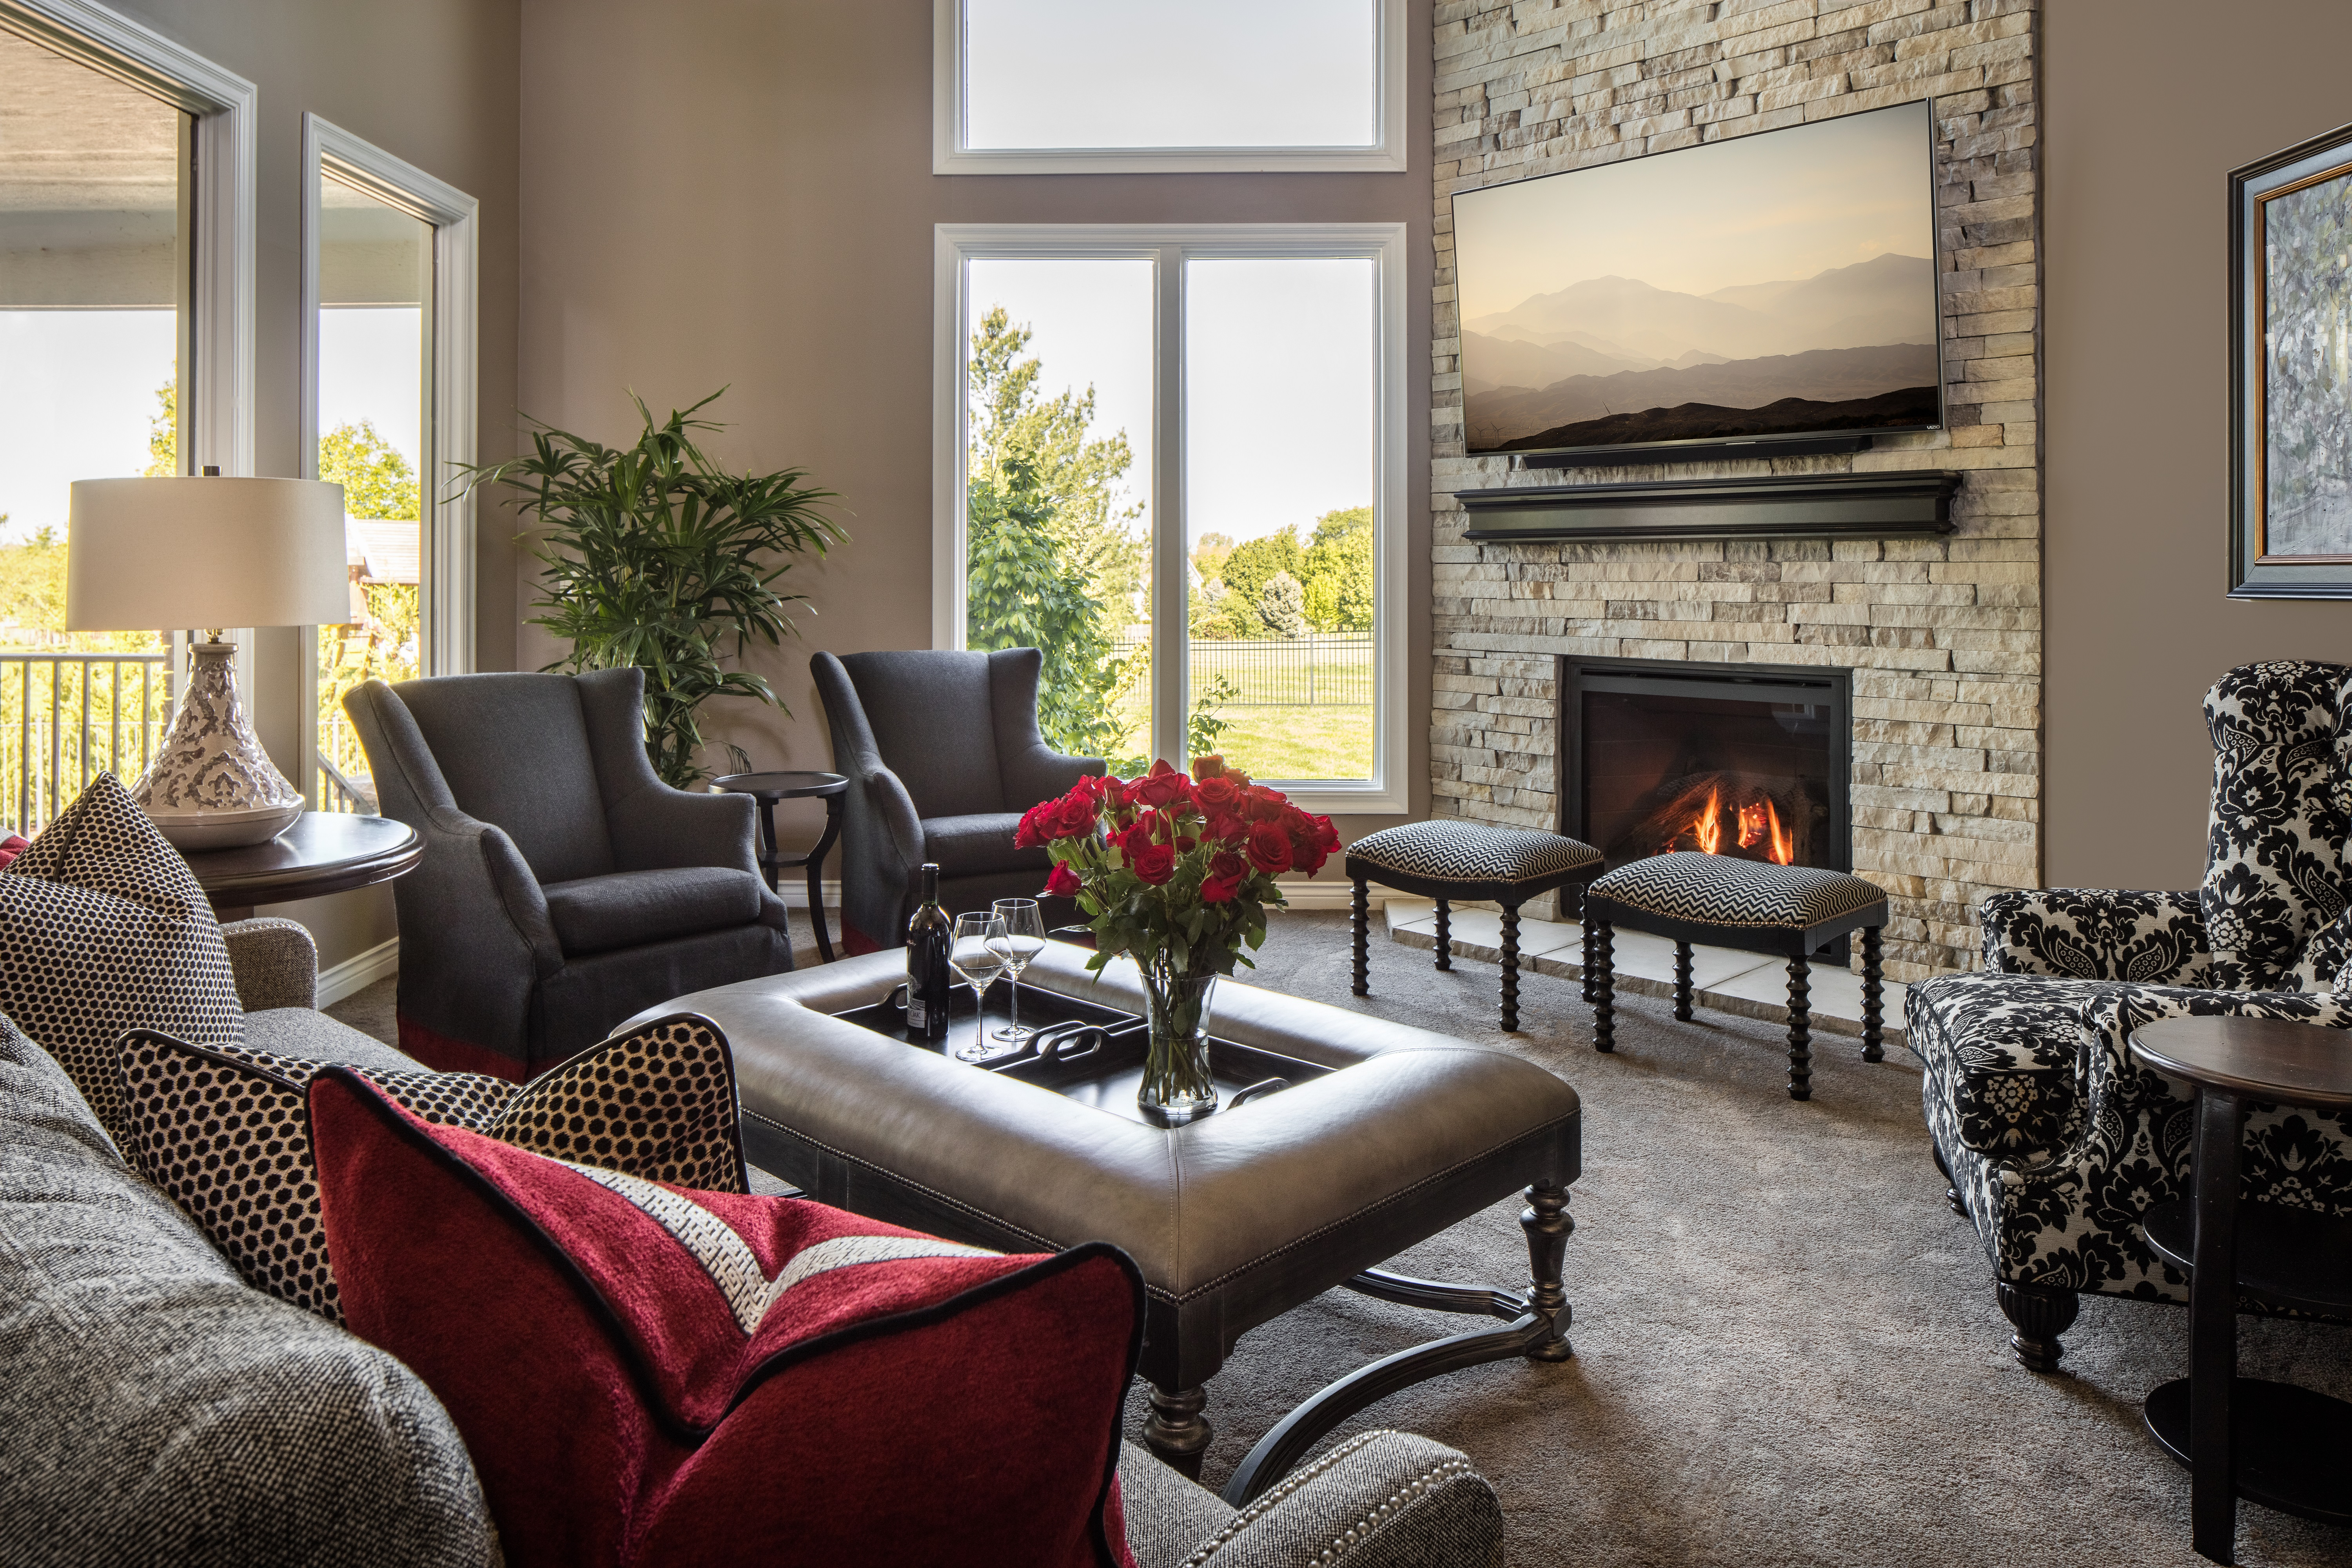 Marvelous From Unused To Enjoyed Great Room Update: A Design Connection, Inc.  Featured Project